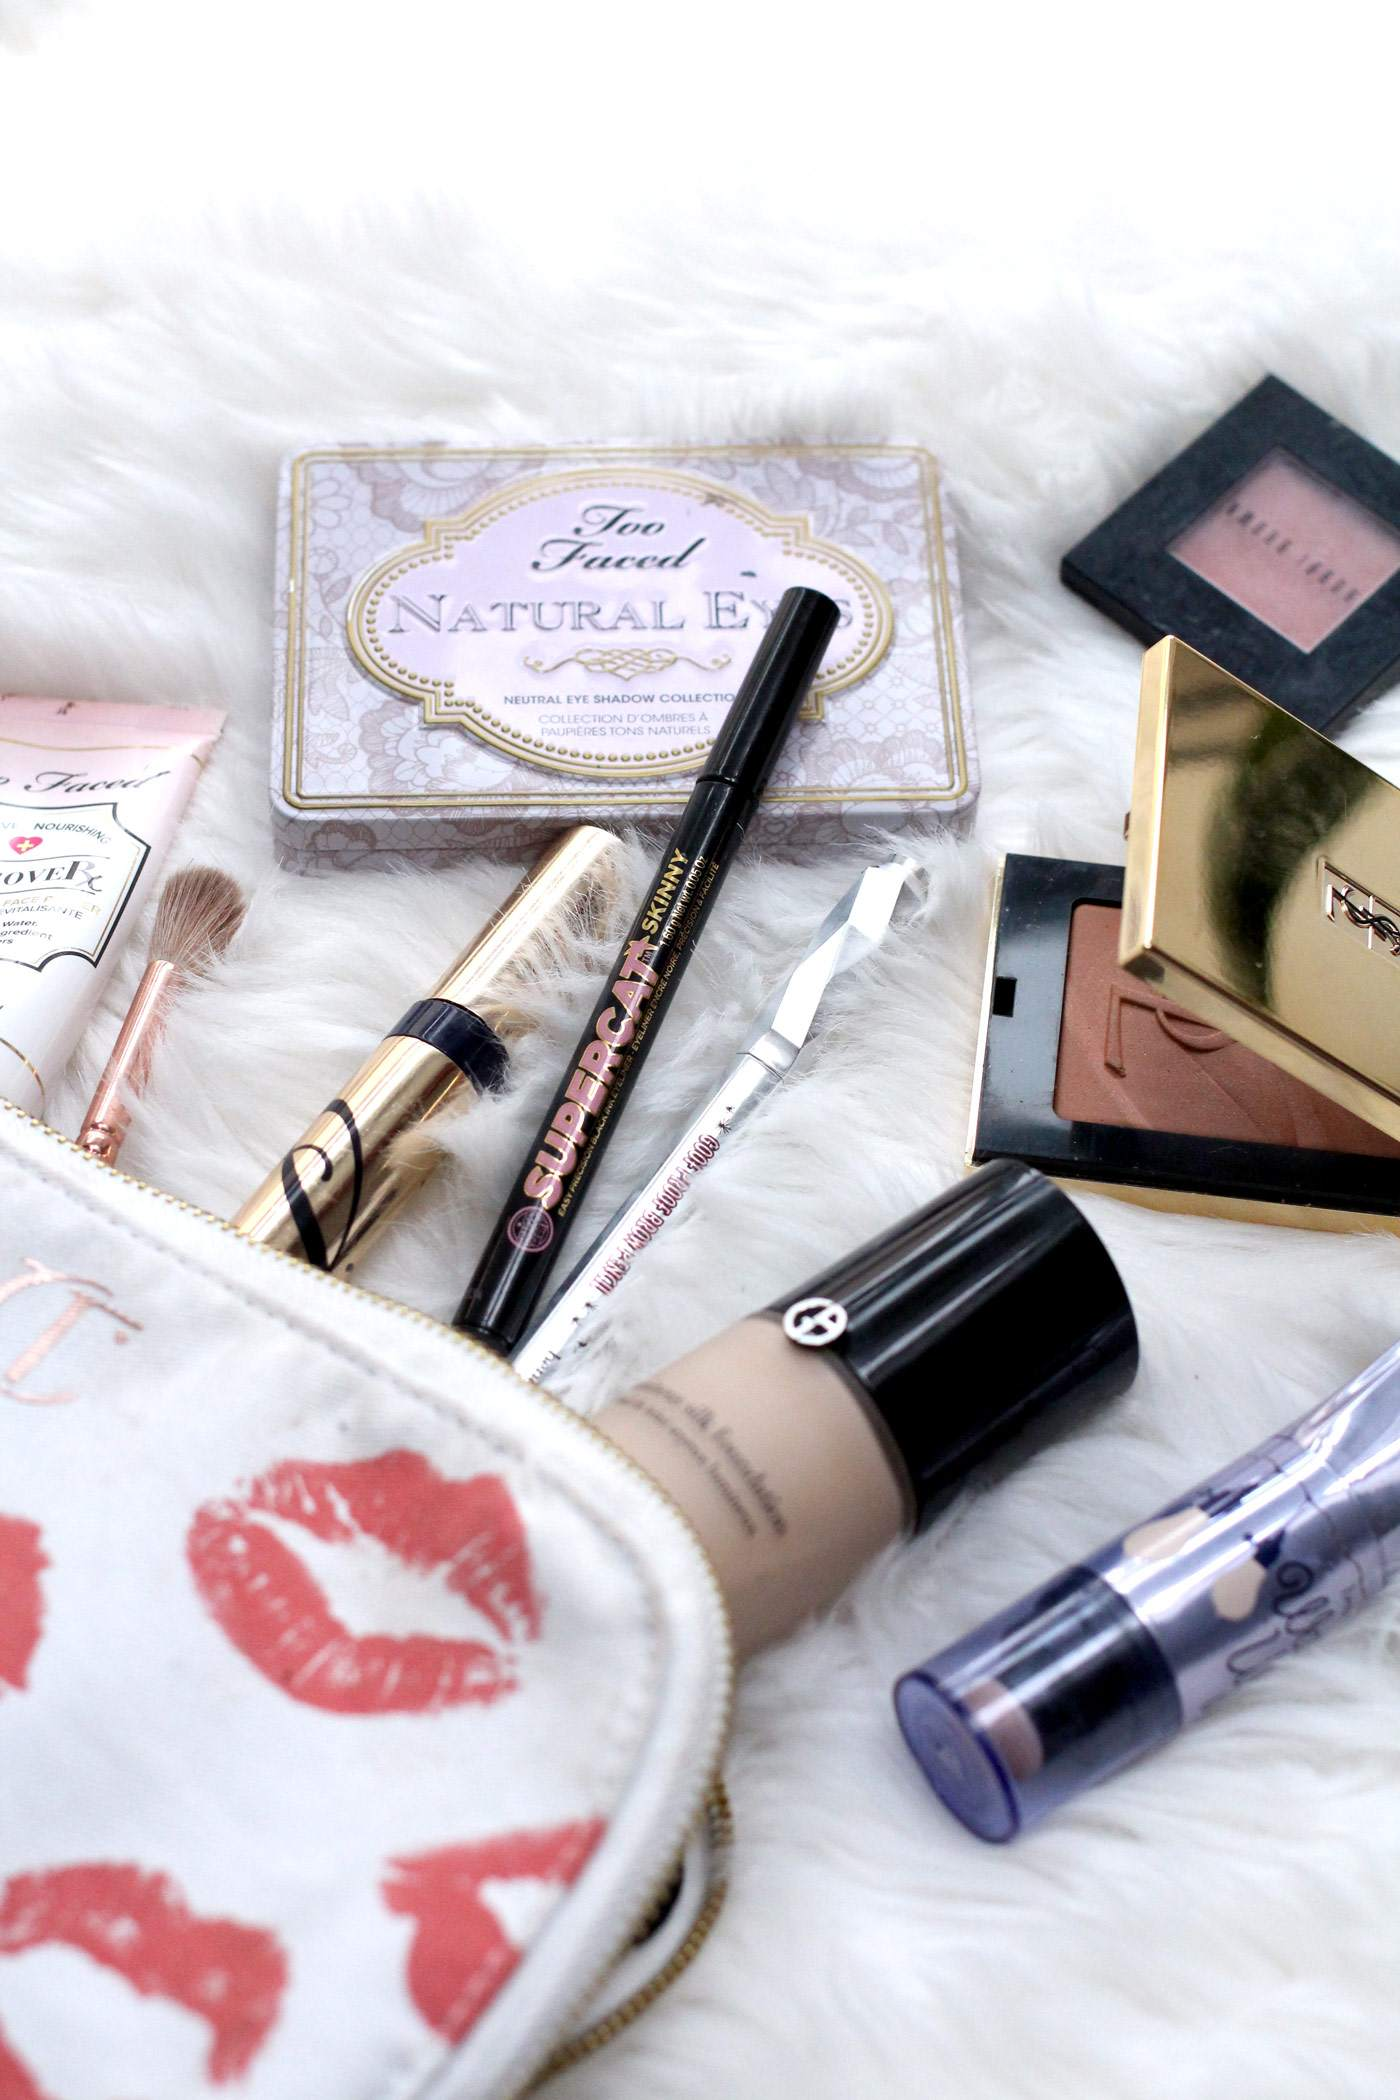 whats-in-my-makup-bag-giorgio-armani-benefit-soap-and-glory-too-faced